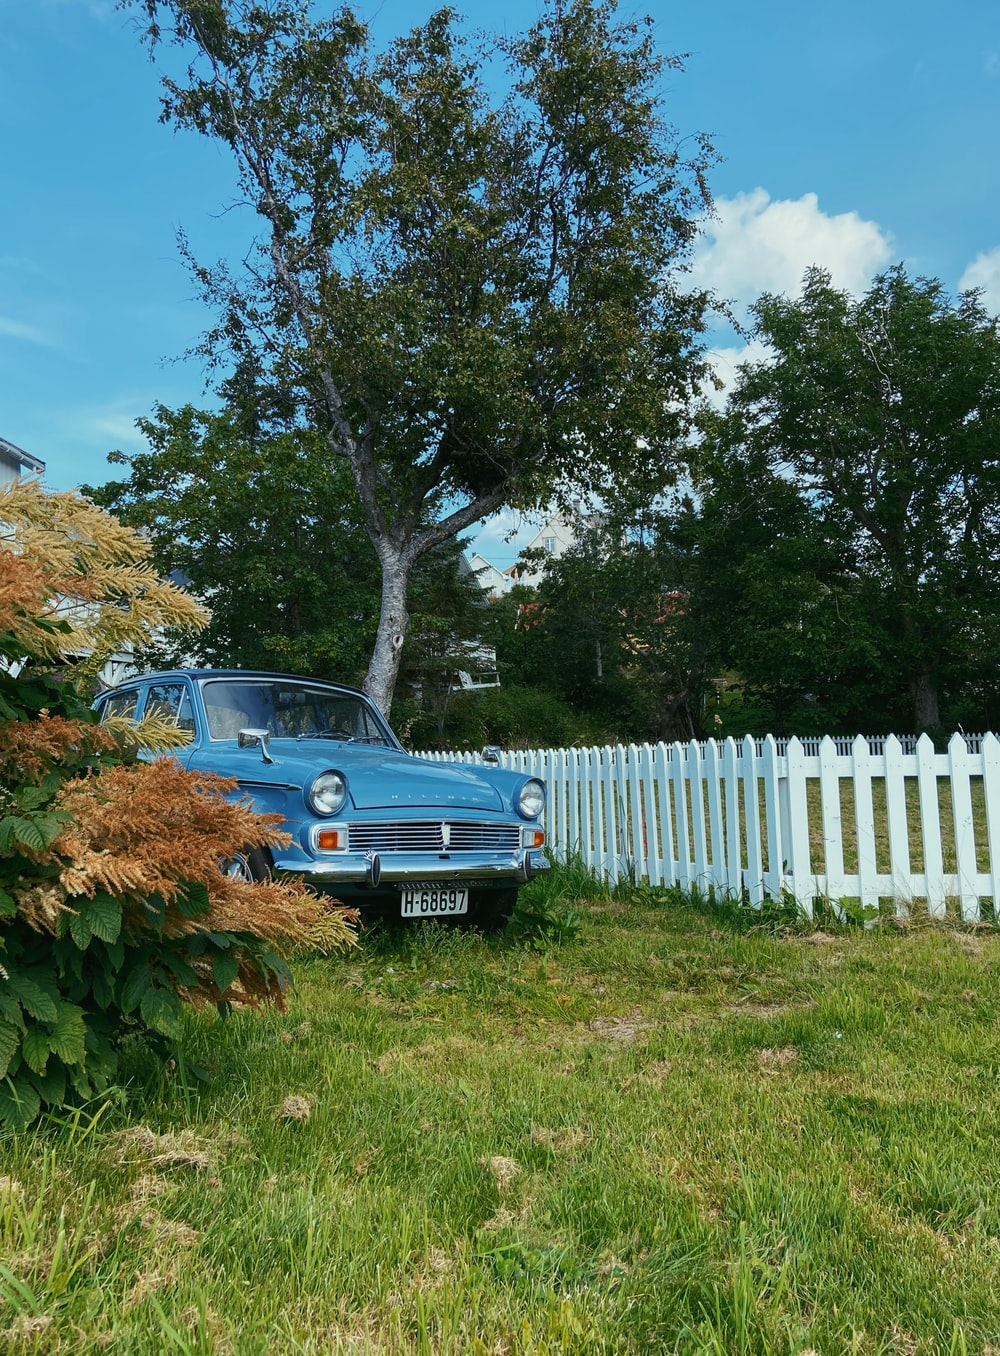 blue car parked beside white wooden fence during daytime